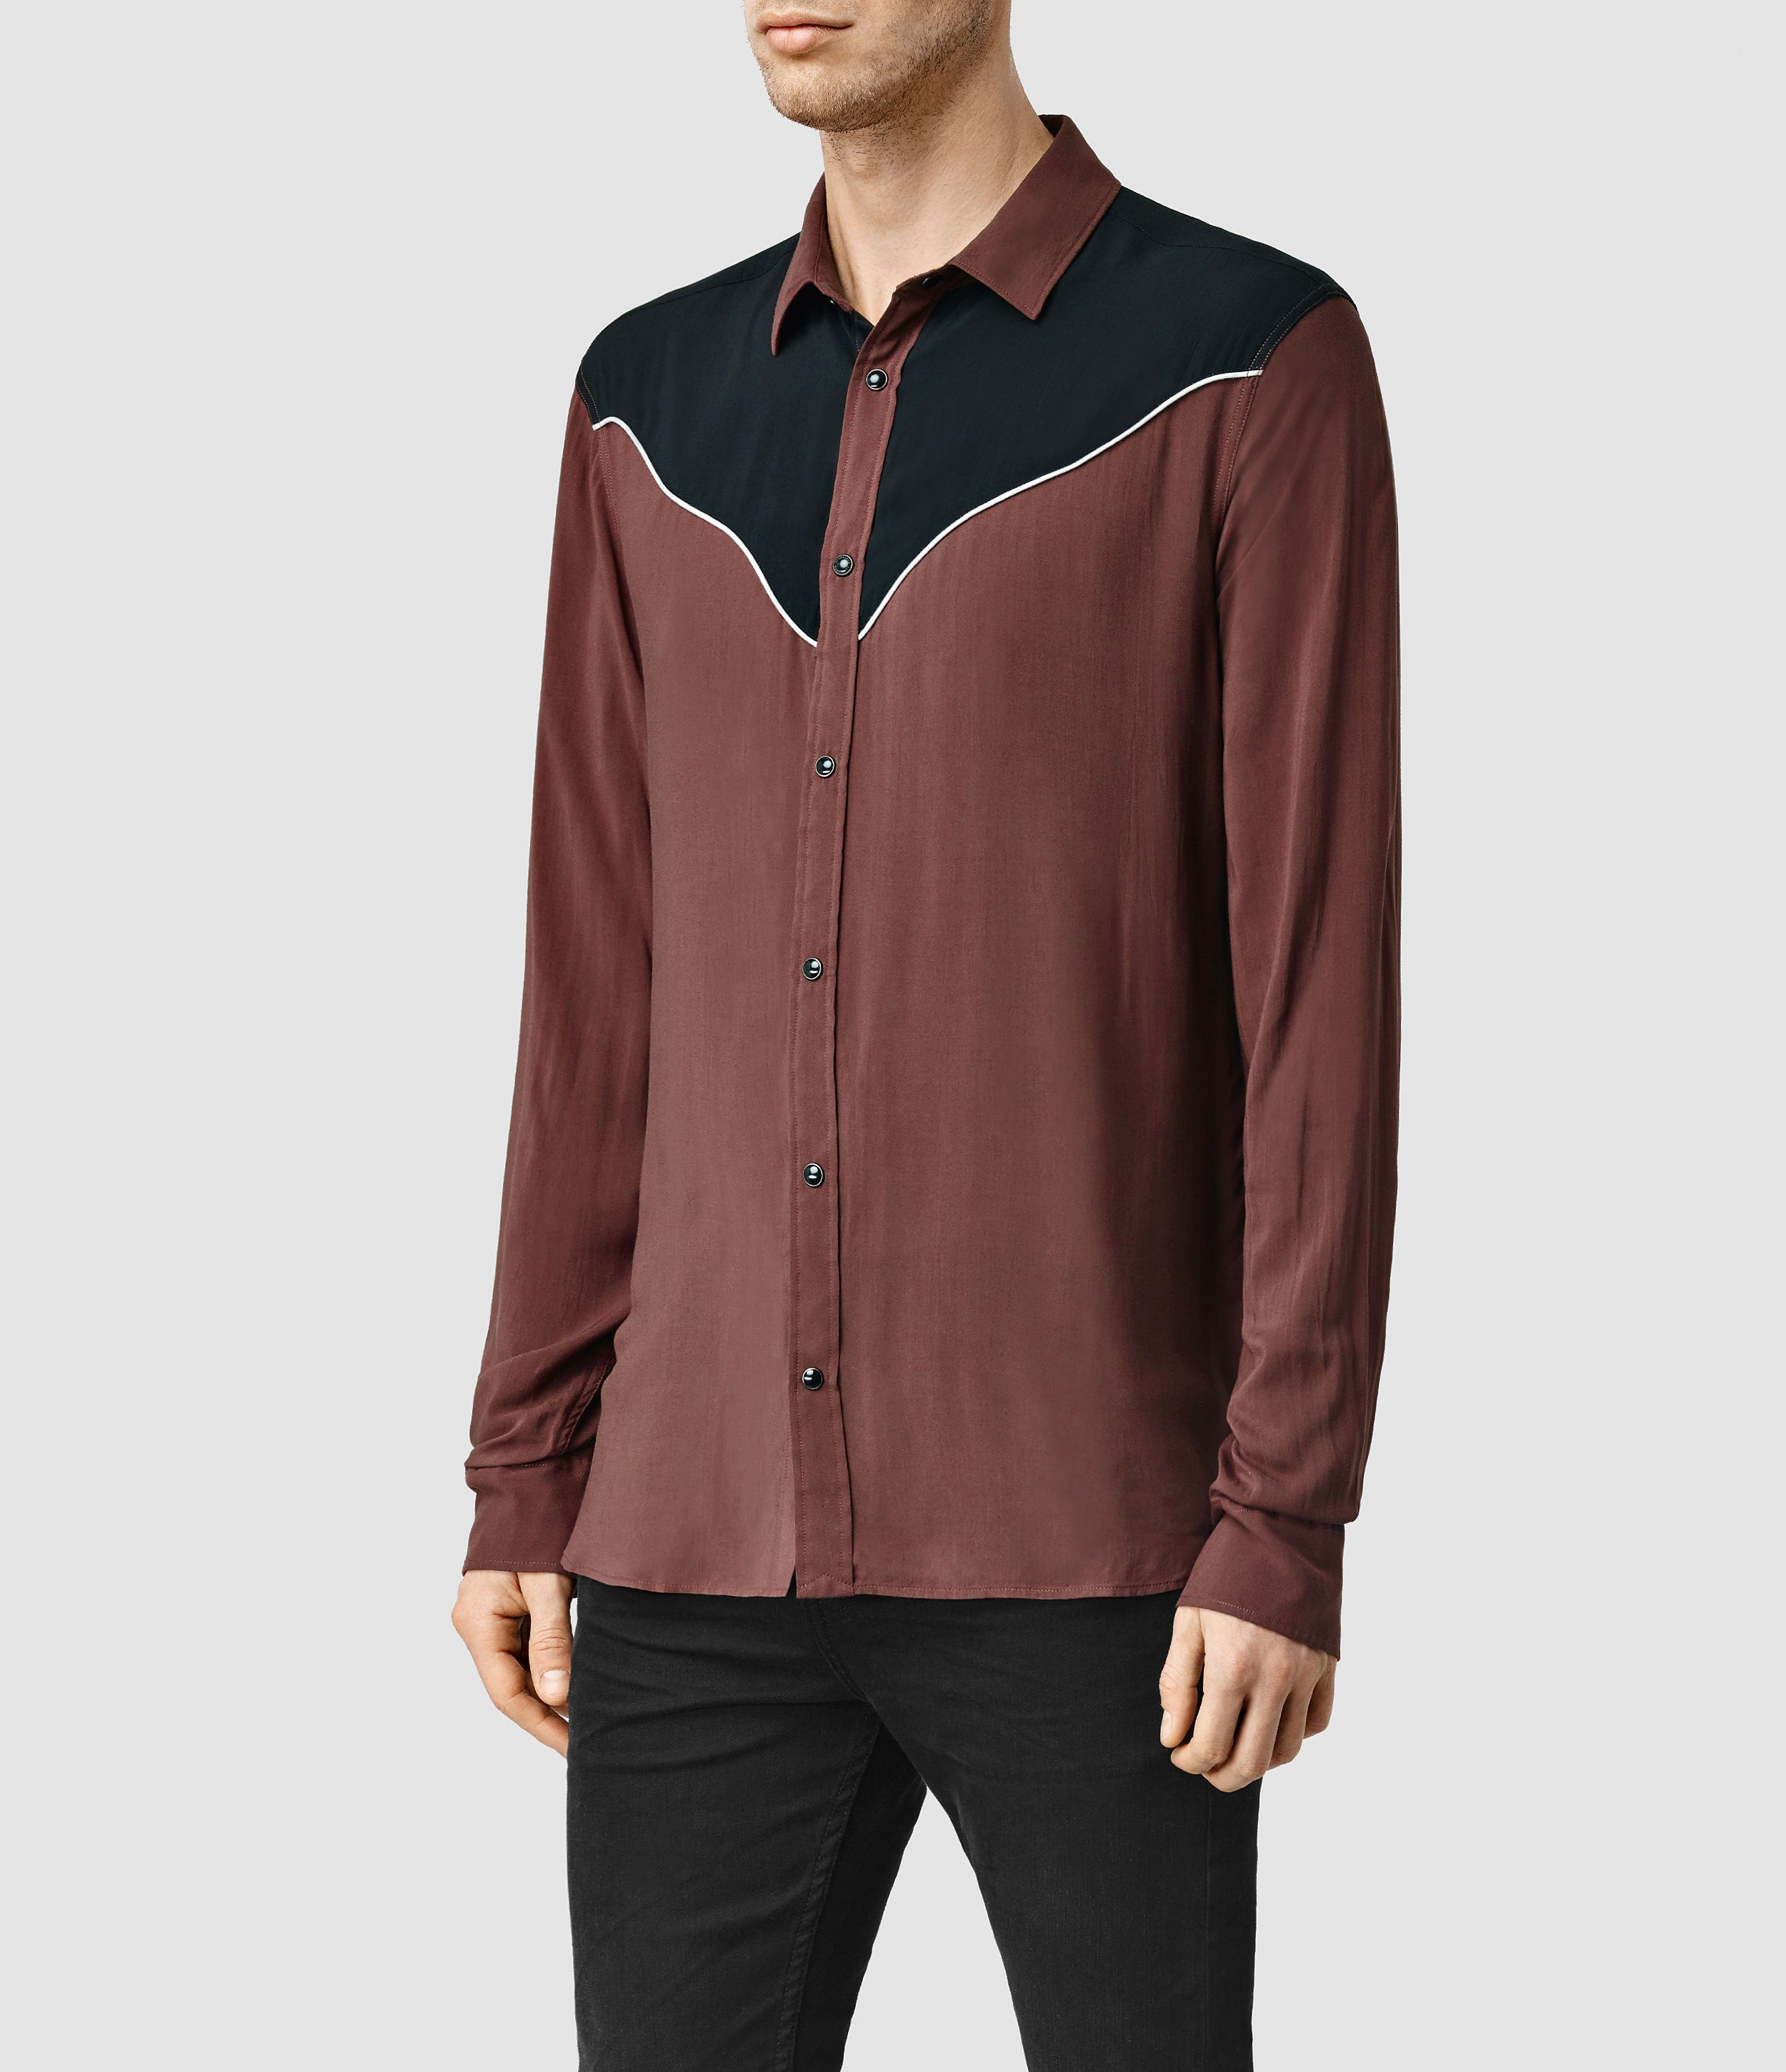 ALLSAINTS UK: Mens Catoosa Shirt (Black) | Men's Shirt | Pinterest ...